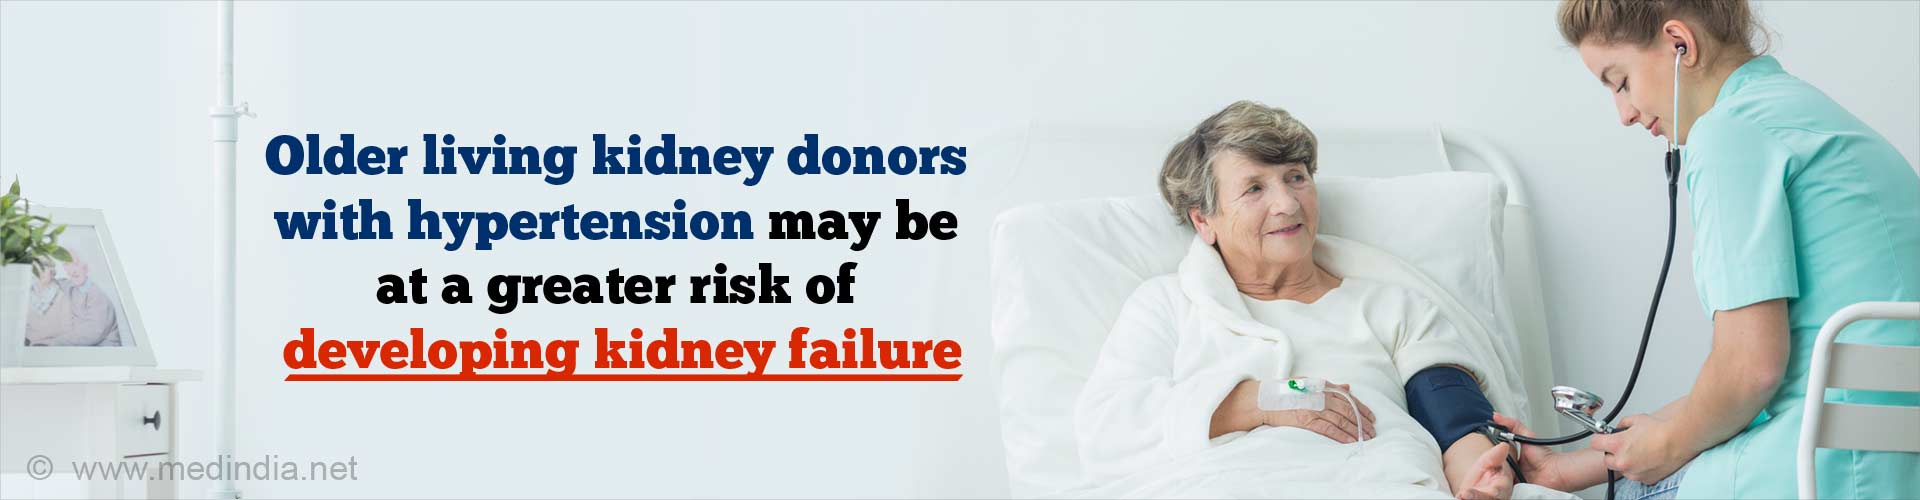 Older living kidney donors with hypertension may be at a greater risk of developing kidney failure.